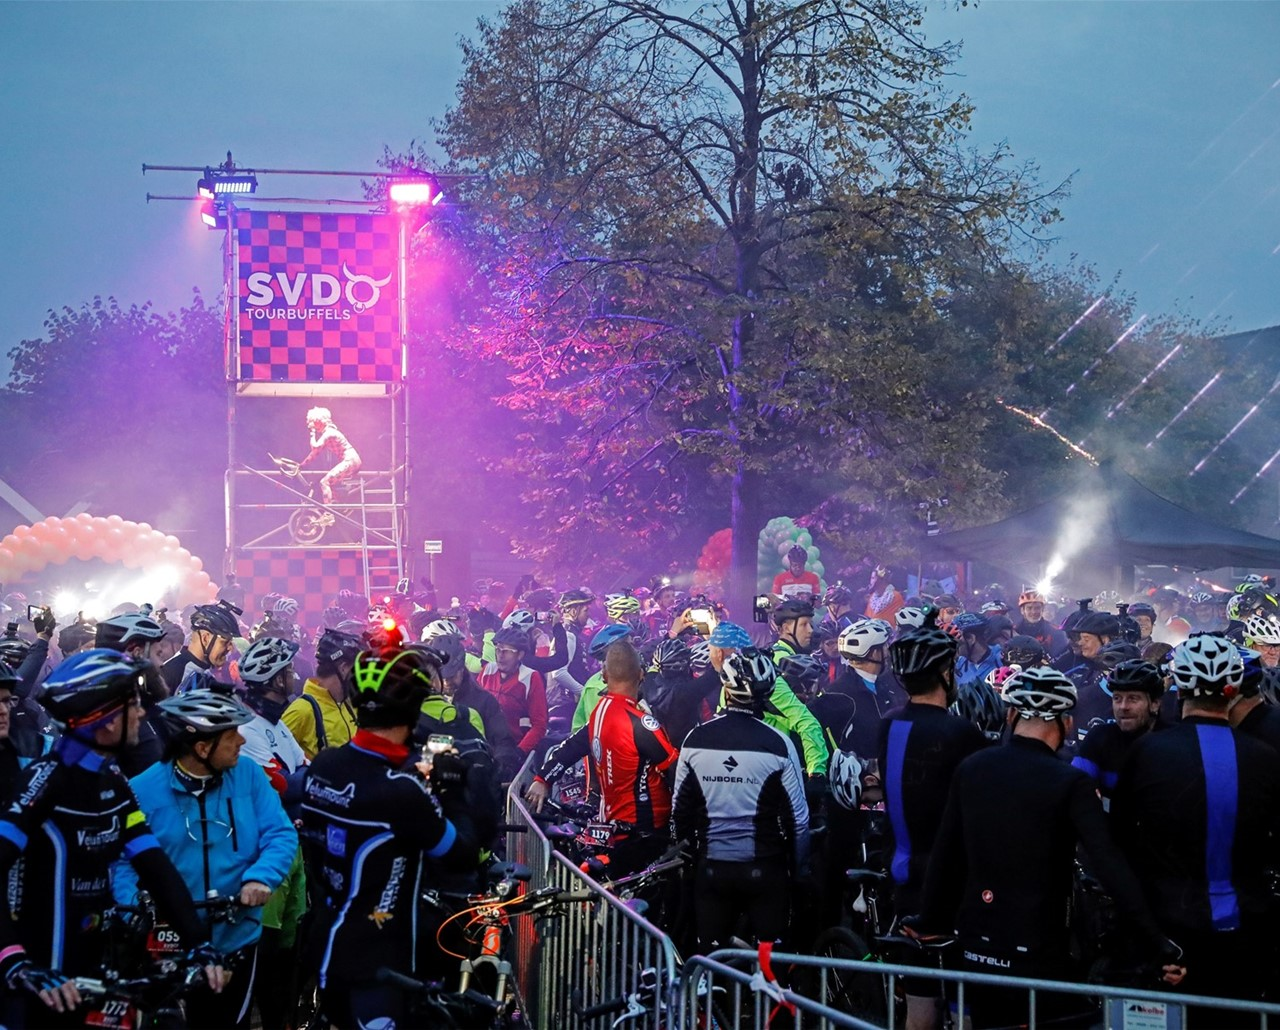 Mountainbike-Mania in Hellendorn